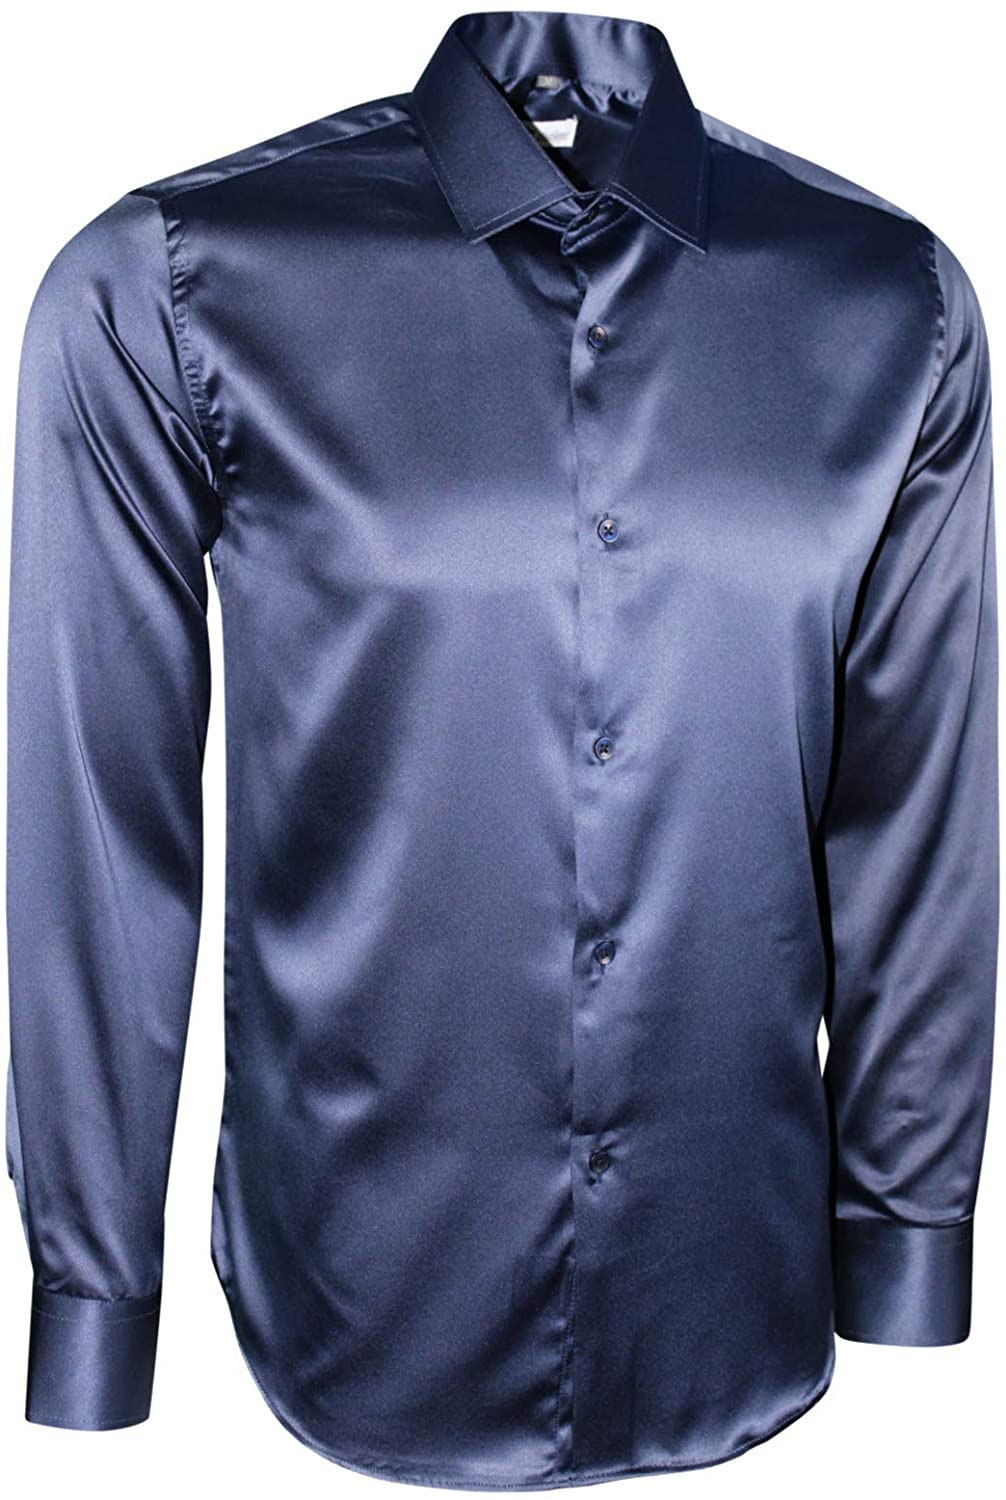 Dominic Stefano Mens Satin Shiny Silk - Feel Smart Casual Dress - Affordable & Comfortable - Easy to Iron Best for Wedding Business & Evening Party Shirts